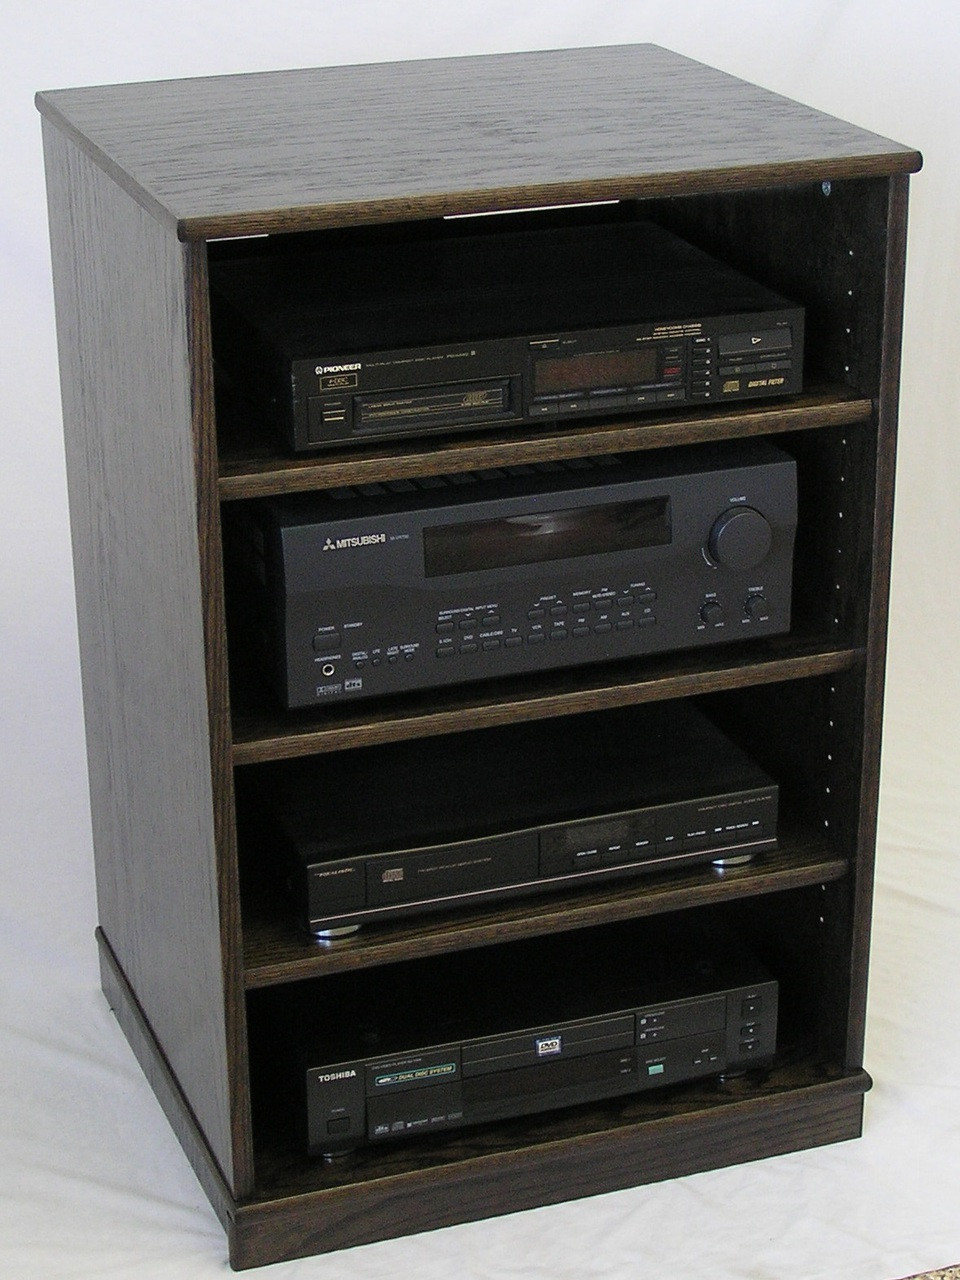 Ebony Oak Tv Stand Stereo Cabinet 33 Inches High